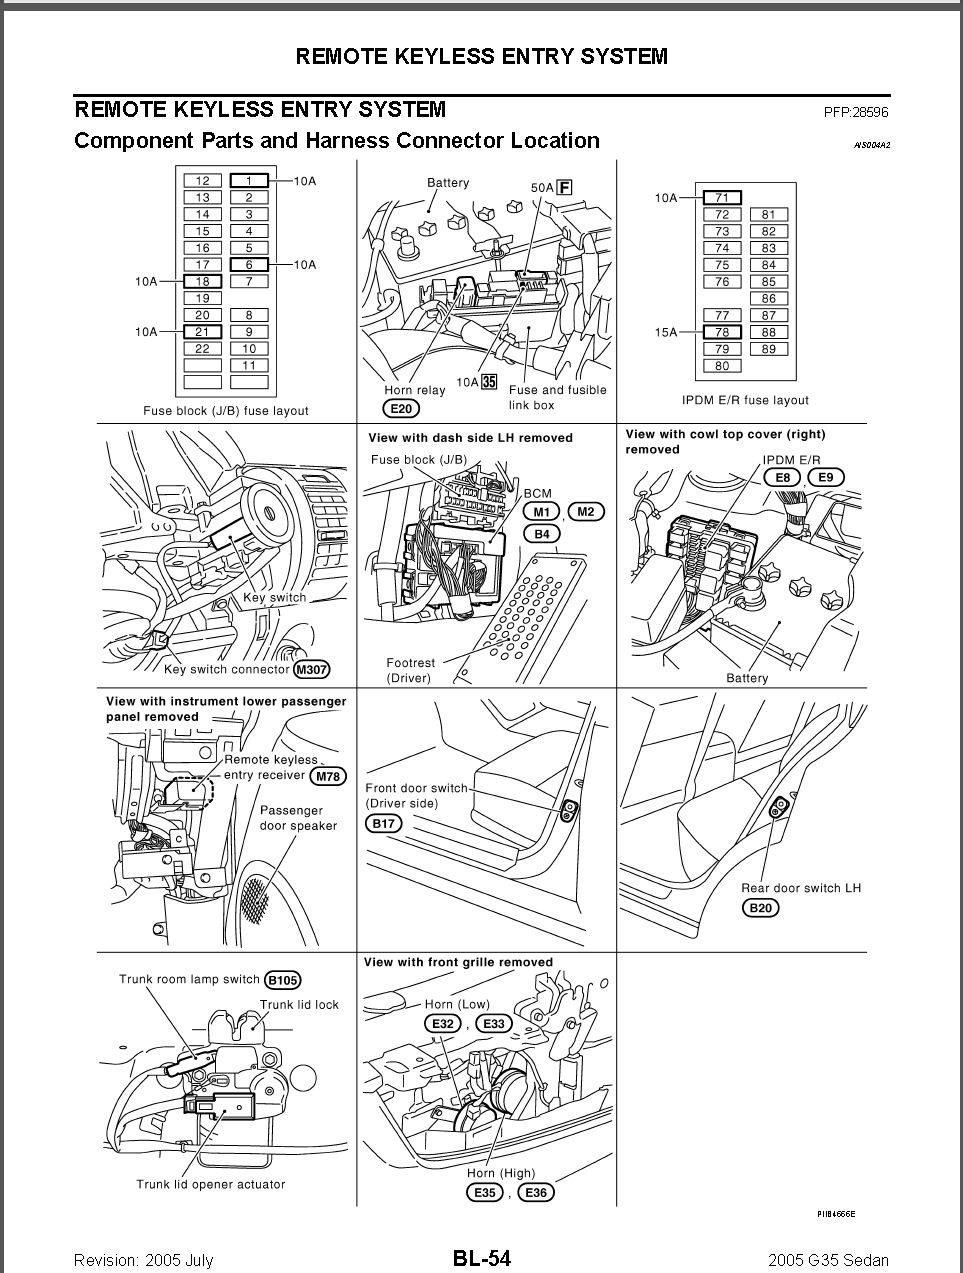 2005 Infiniti G35 Engine Diagram Free Download Wiring Diagrams 2007 Sedan G35x Intelligent Key Doesnt Work Properly What Can Be 24 At Firing Order